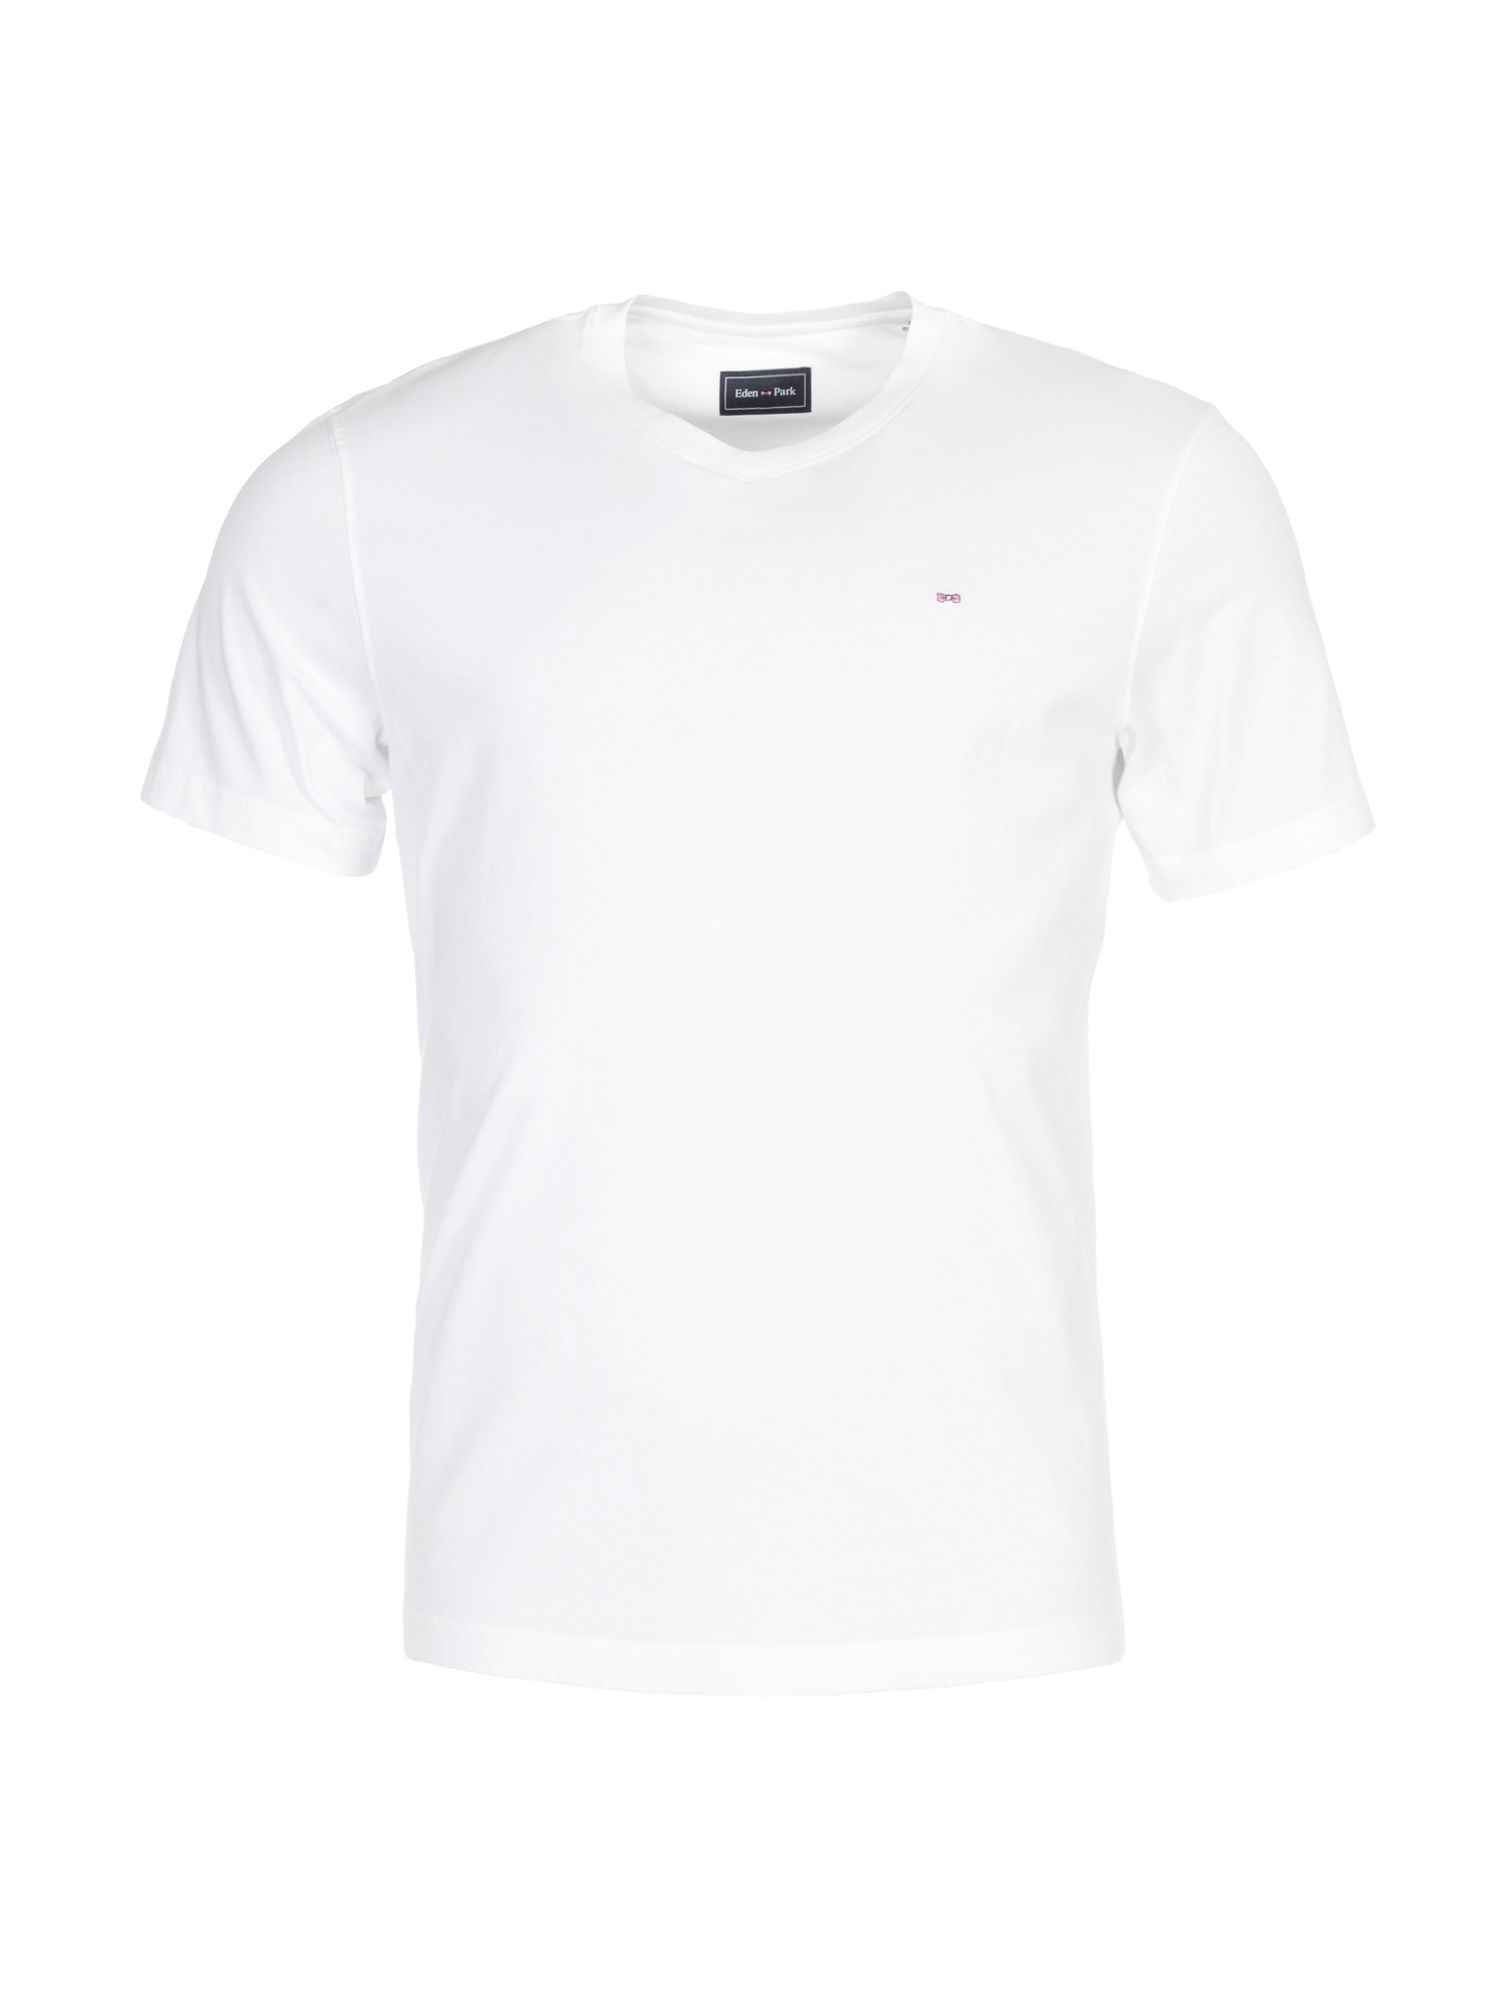 Men's Eden Park Classic Cotton T-Shirt, White